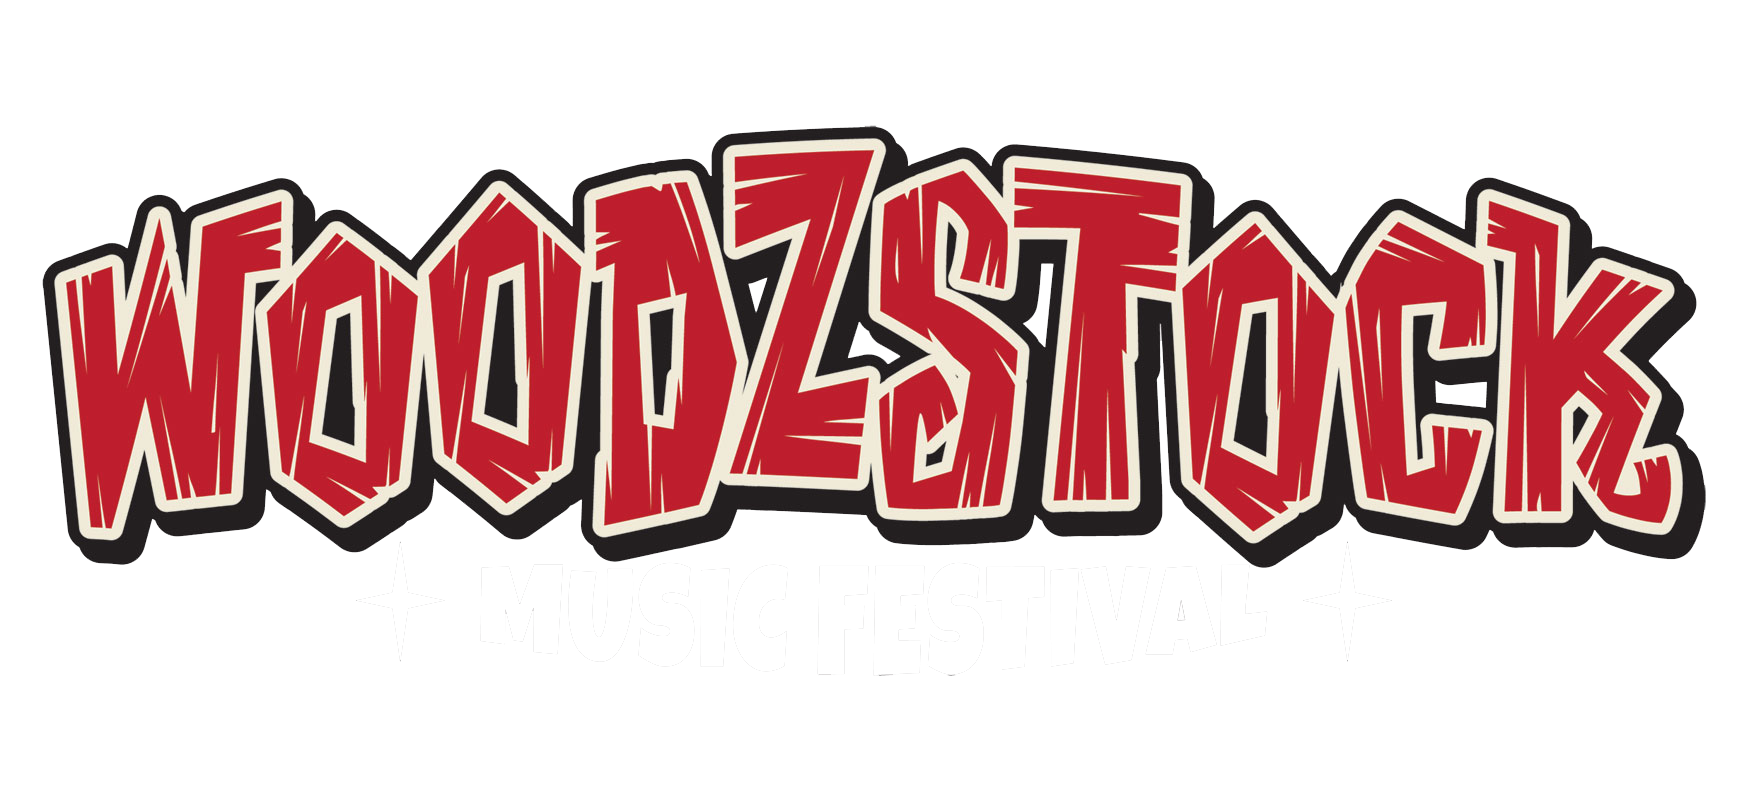 Woodzstock Music Festival